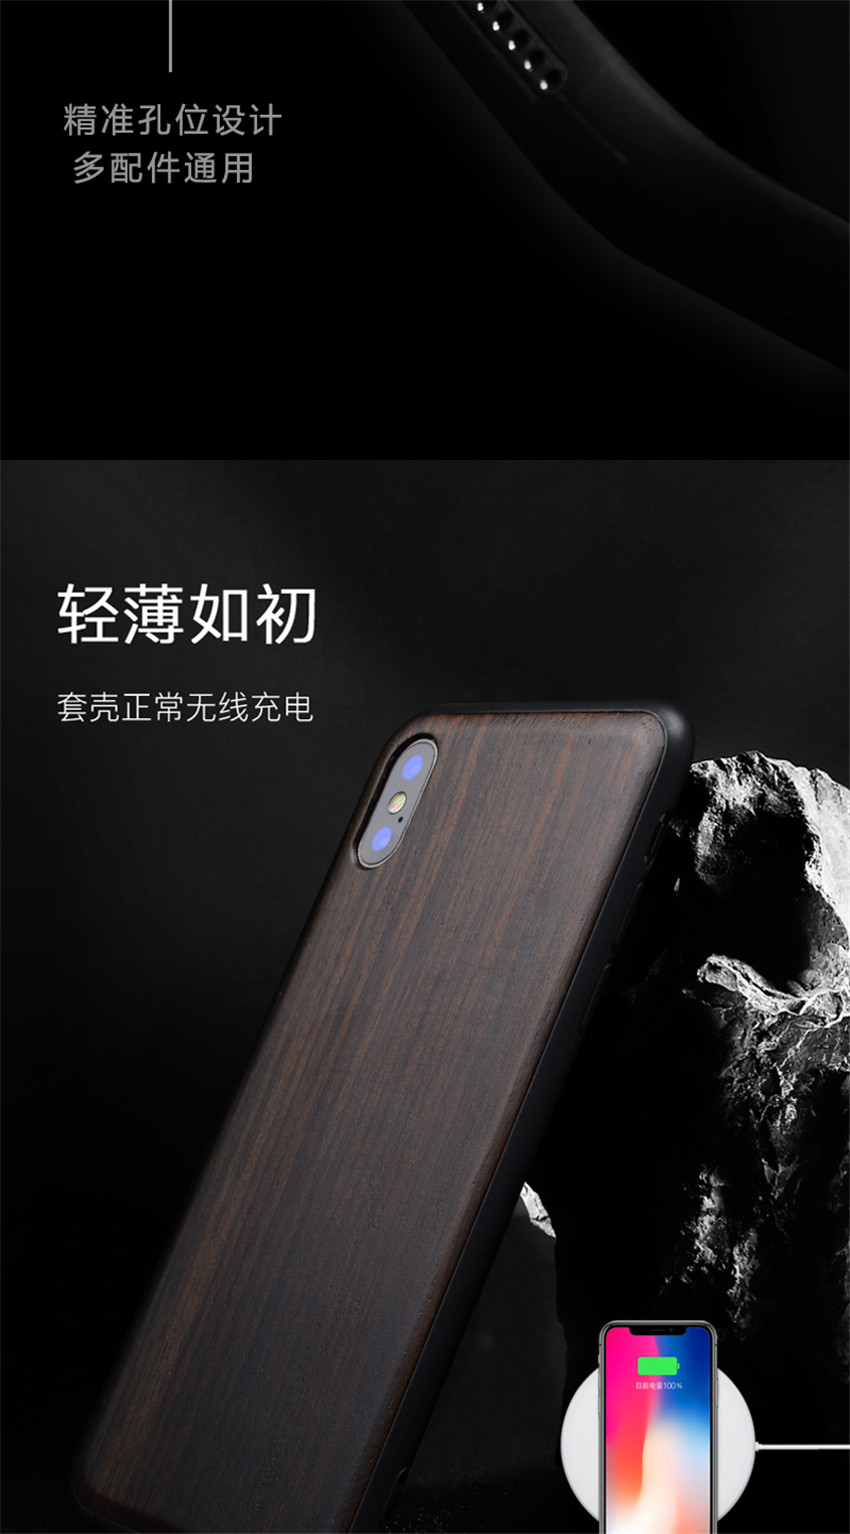 2018 New For iPhone XS Max Case Black Ebony Wood Cover For iPhone XS Carved TPU Bumper Wooden Case For iPhone X XR (6)